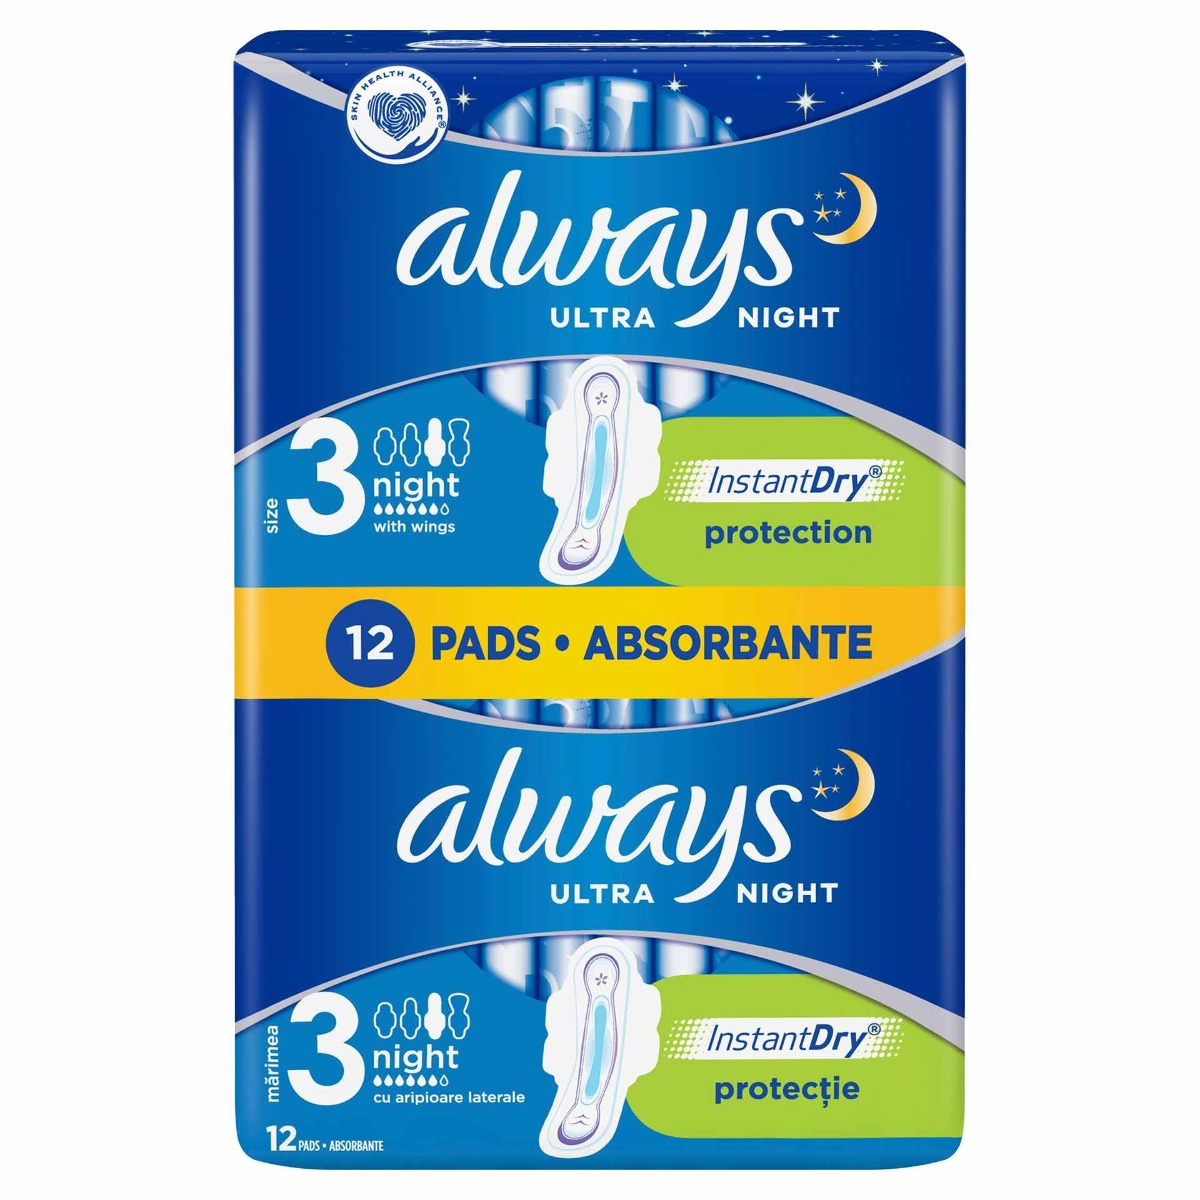 Absorbante Ultra Night Duo, 12 bucati, Always